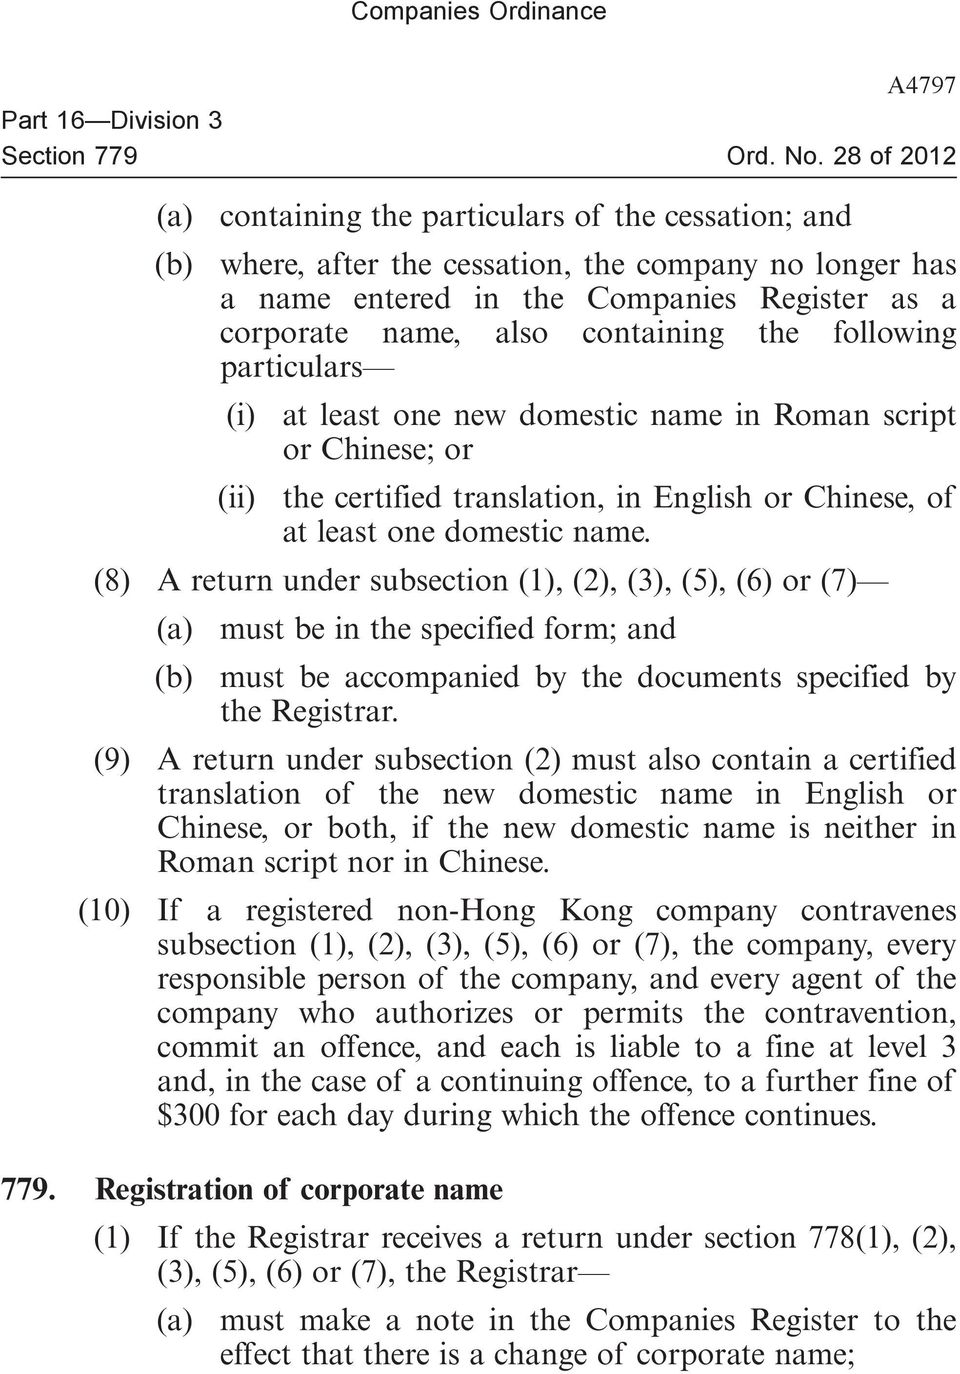 domestic name. (8) A return under subsection (1), (2), (3), (5), (6) or (7) (a) must be in the specified form; and (b) must be accompanied by the documents specified by the Registrar.